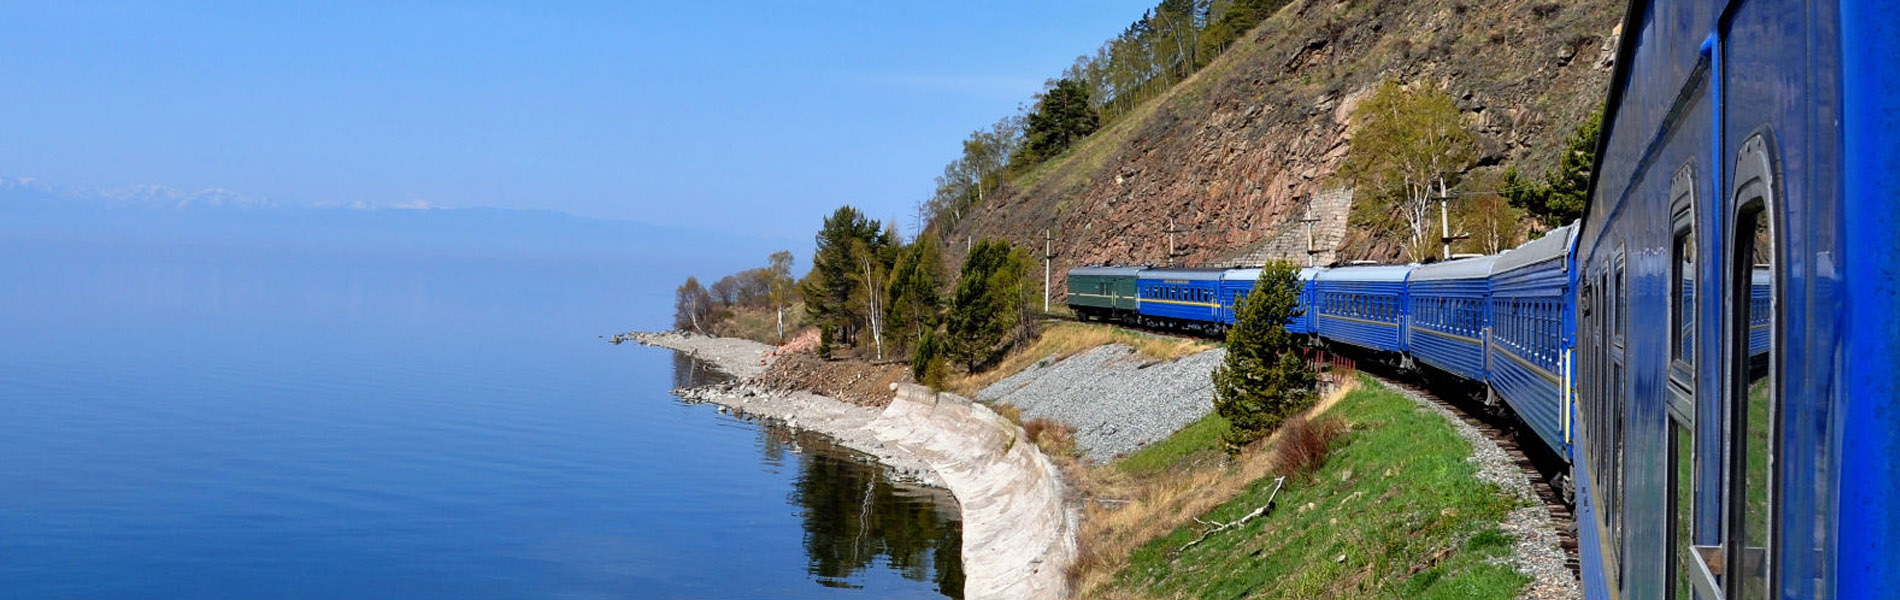 Leading UK rail-based escorted holiday company Great Rail Journeys Ltd , appoints Data Warehouse and Business Intelligence specialists Simpson Associates